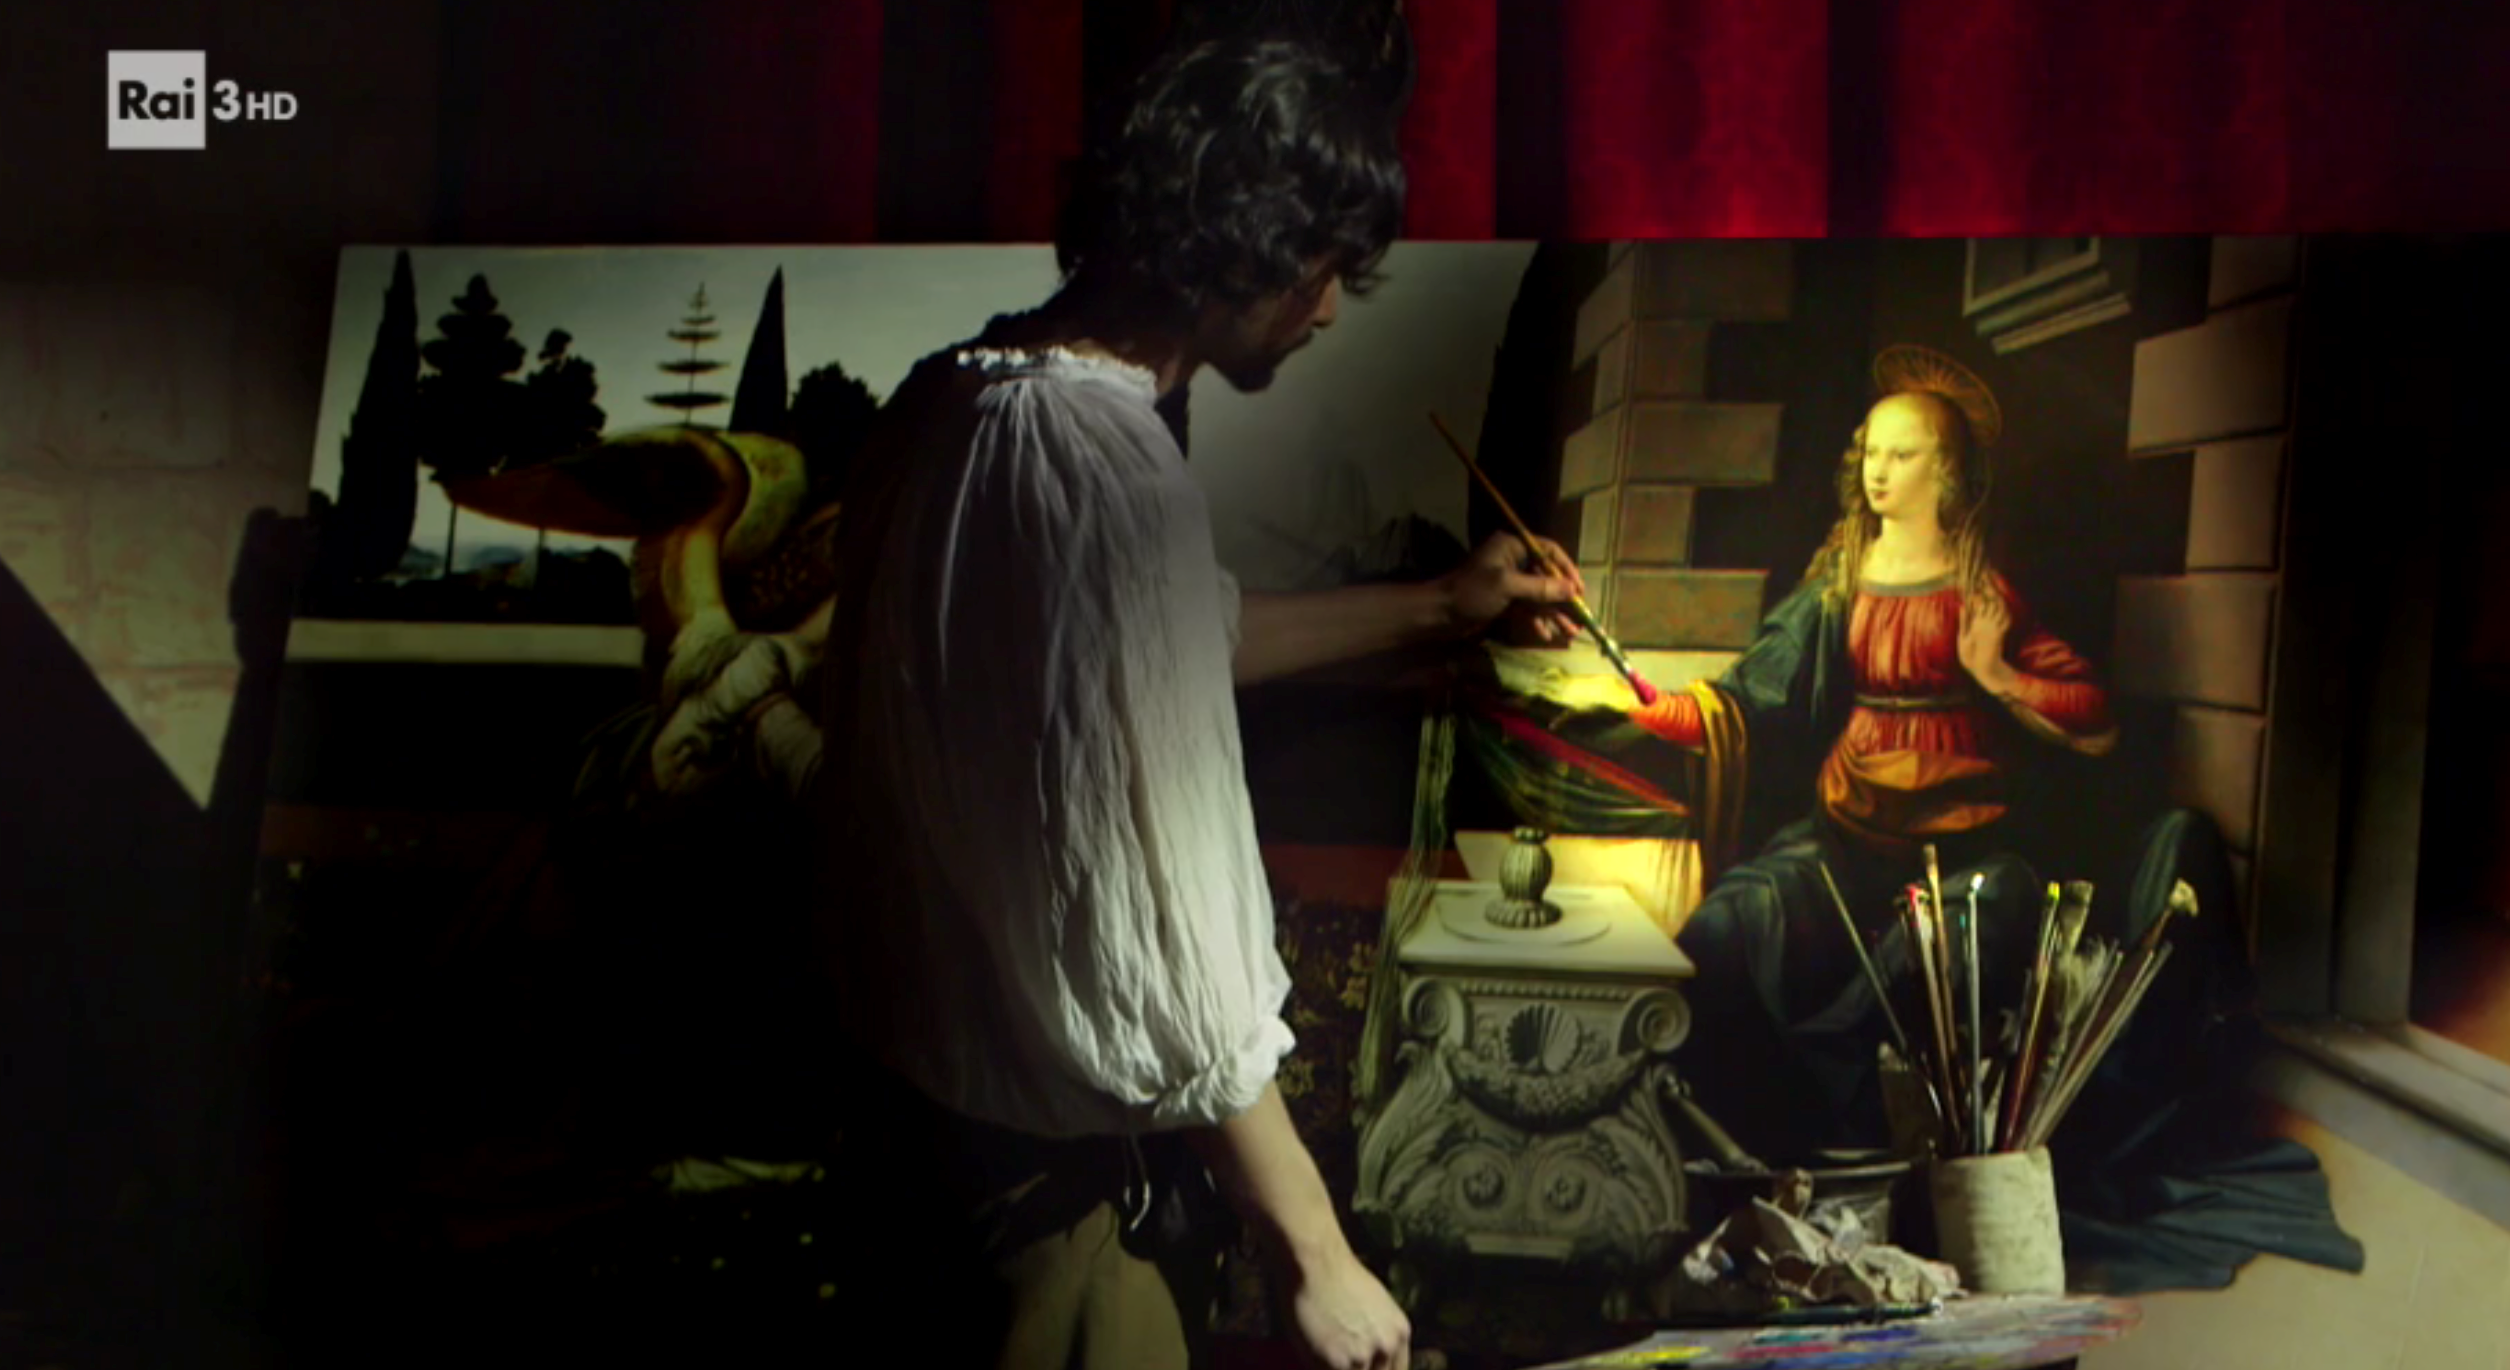 Leonardo himself! The actor prudently avoids putting his pencil on the canvas.